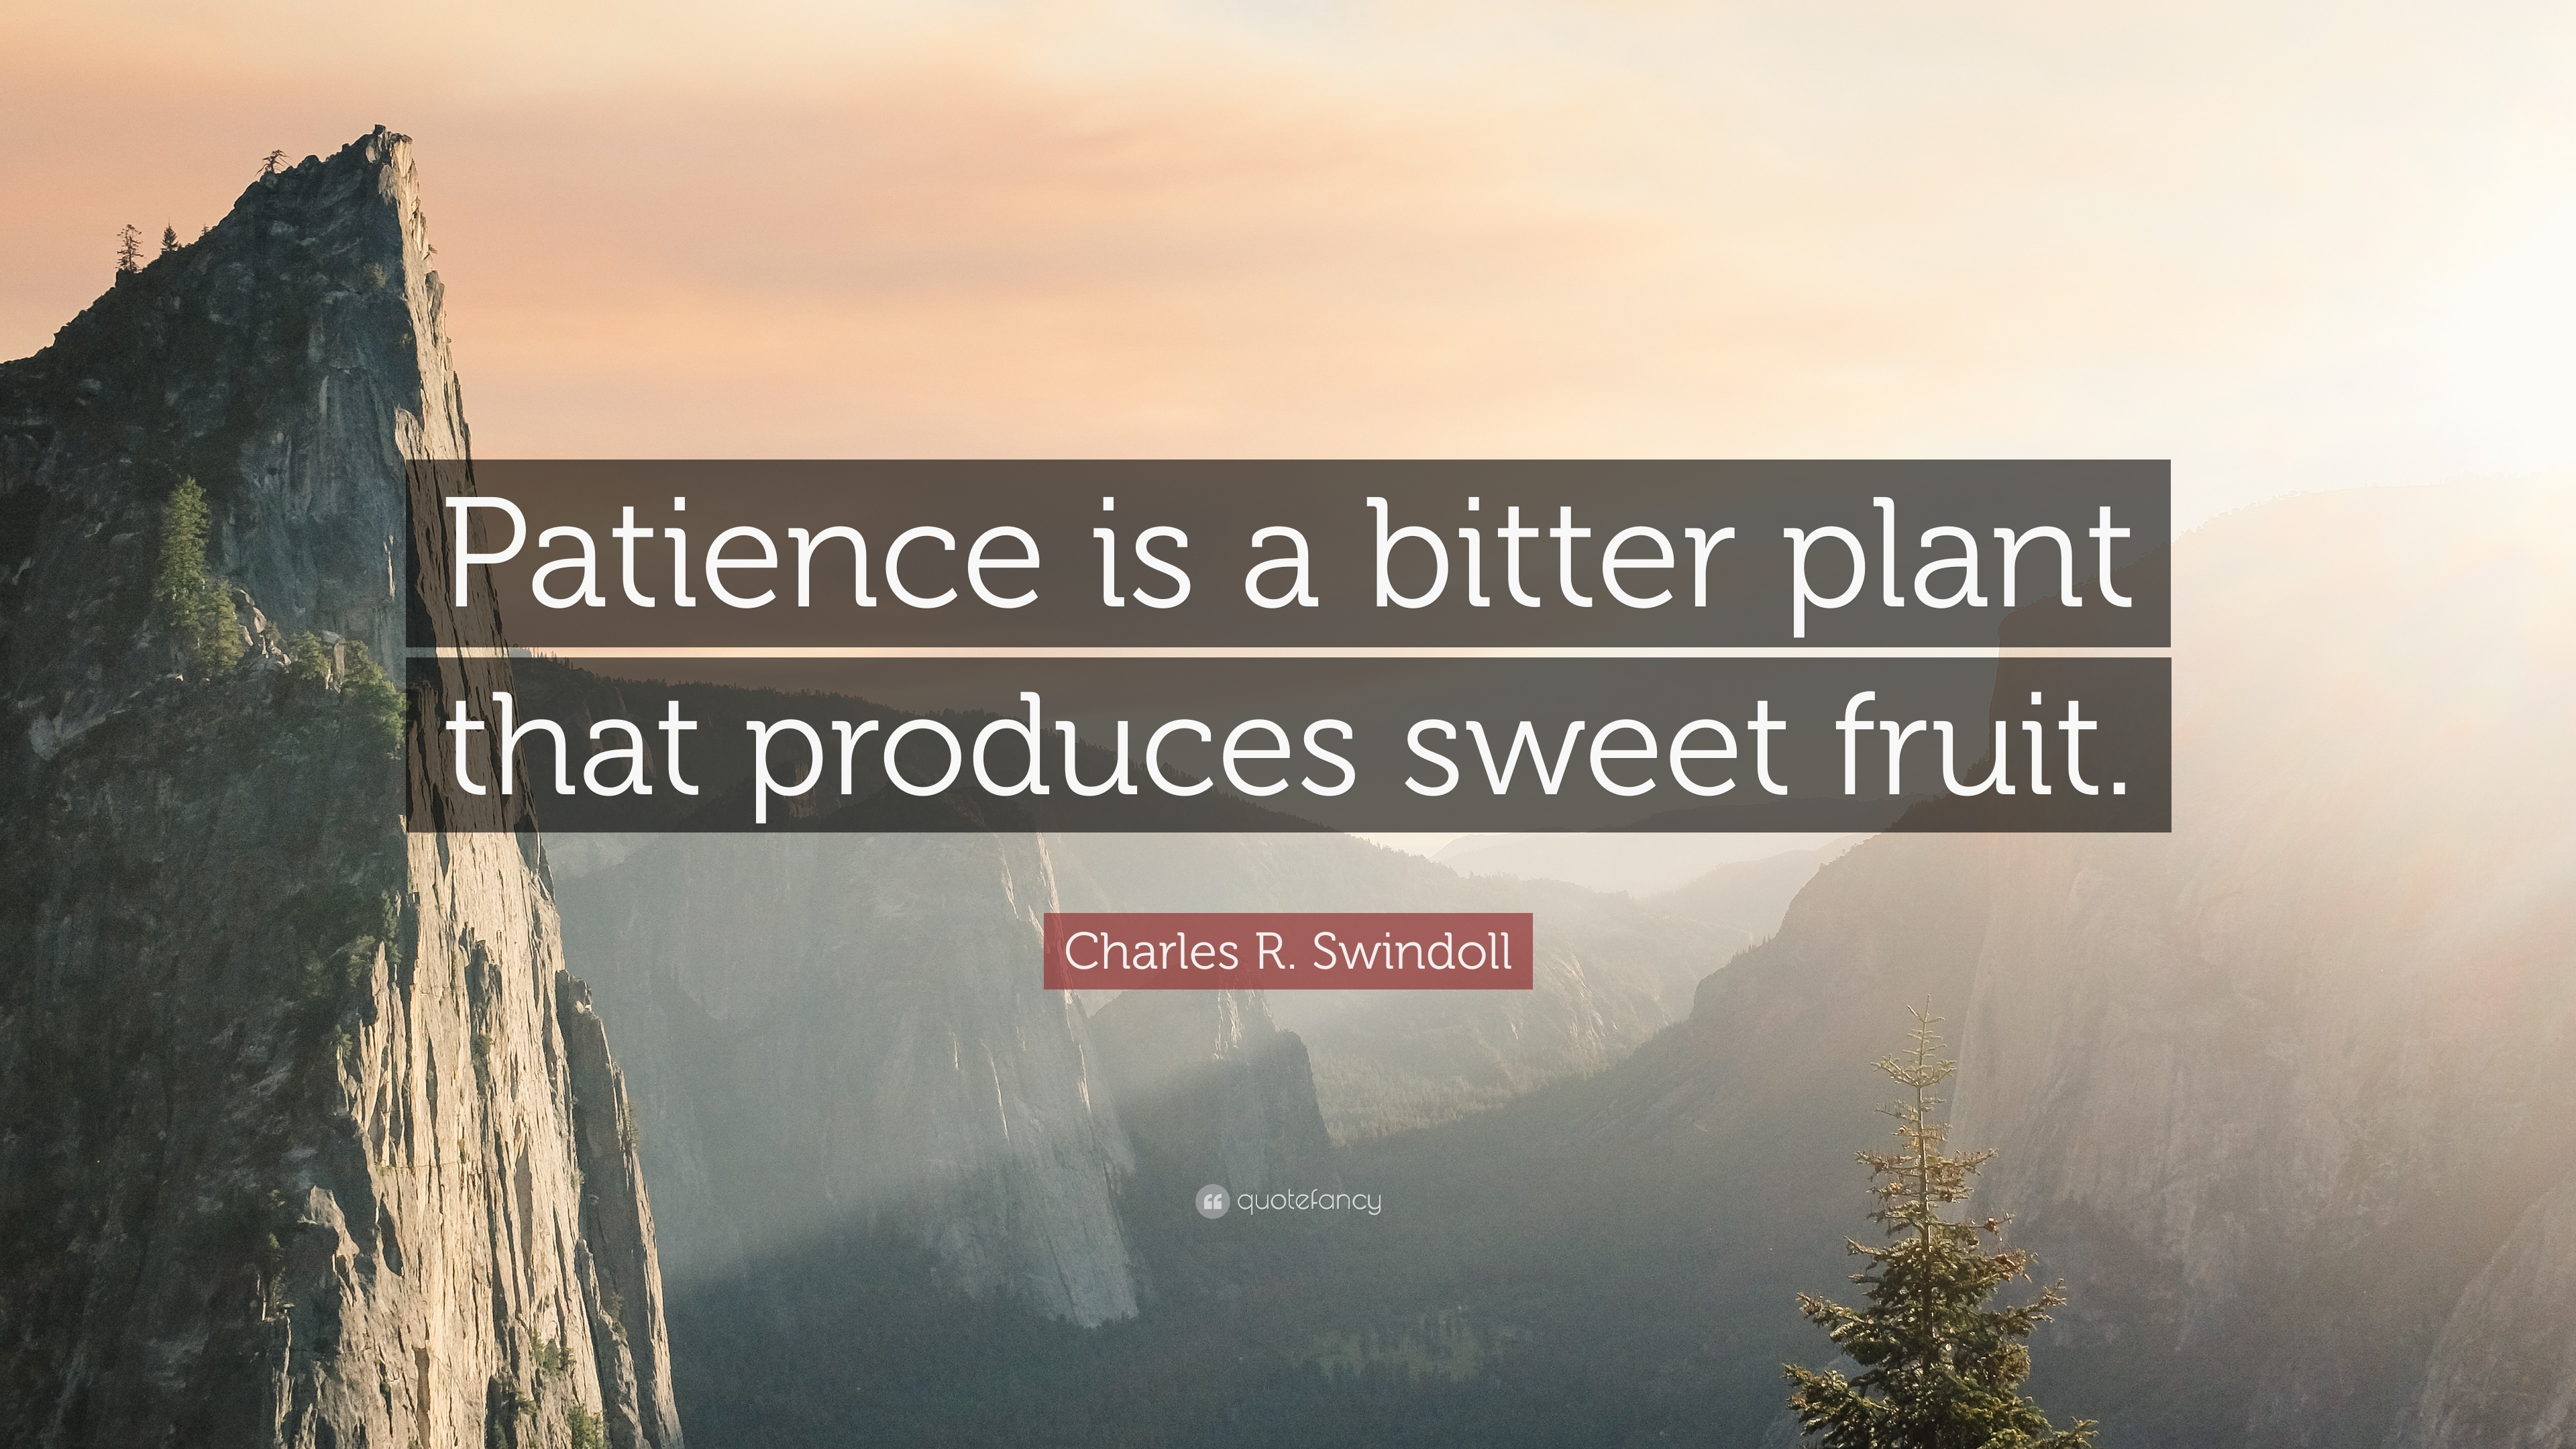 Patience is bitter plant but bears